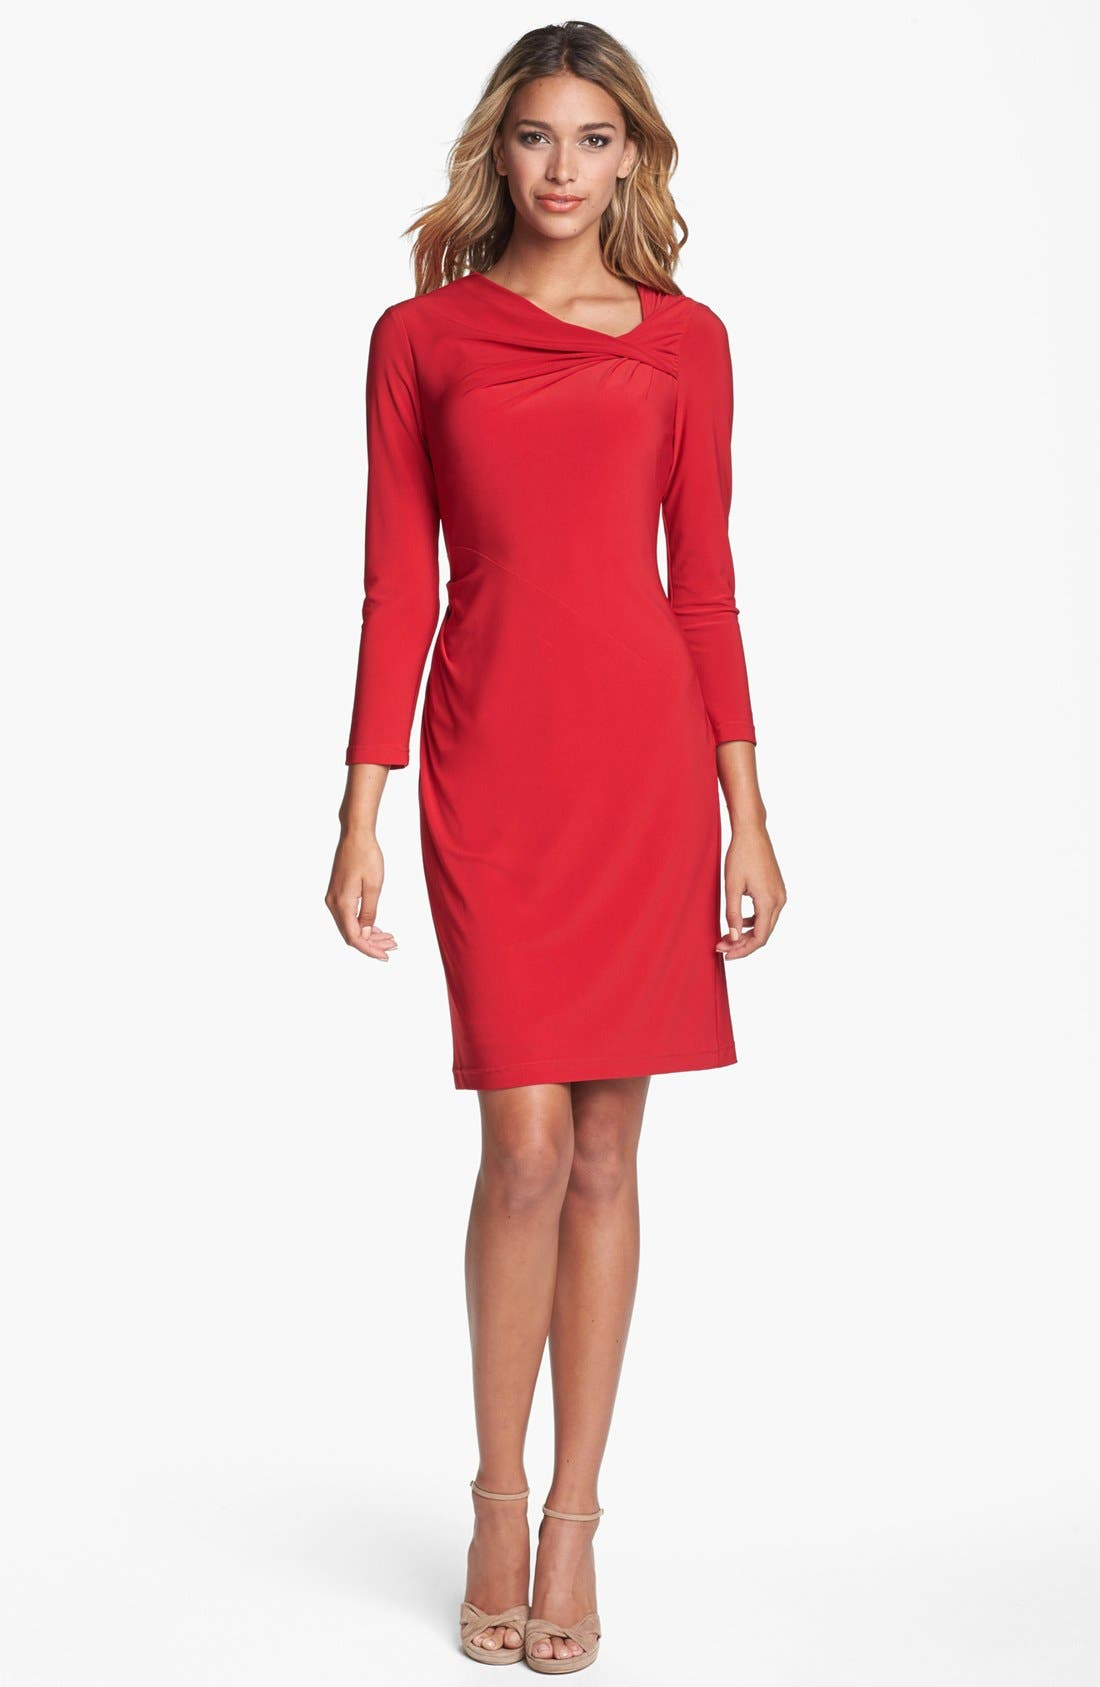 ADRIANNA PAPELL,                             Front Twist Jersey Sheath Dress,                             Main thumbnail 1, color,                             602